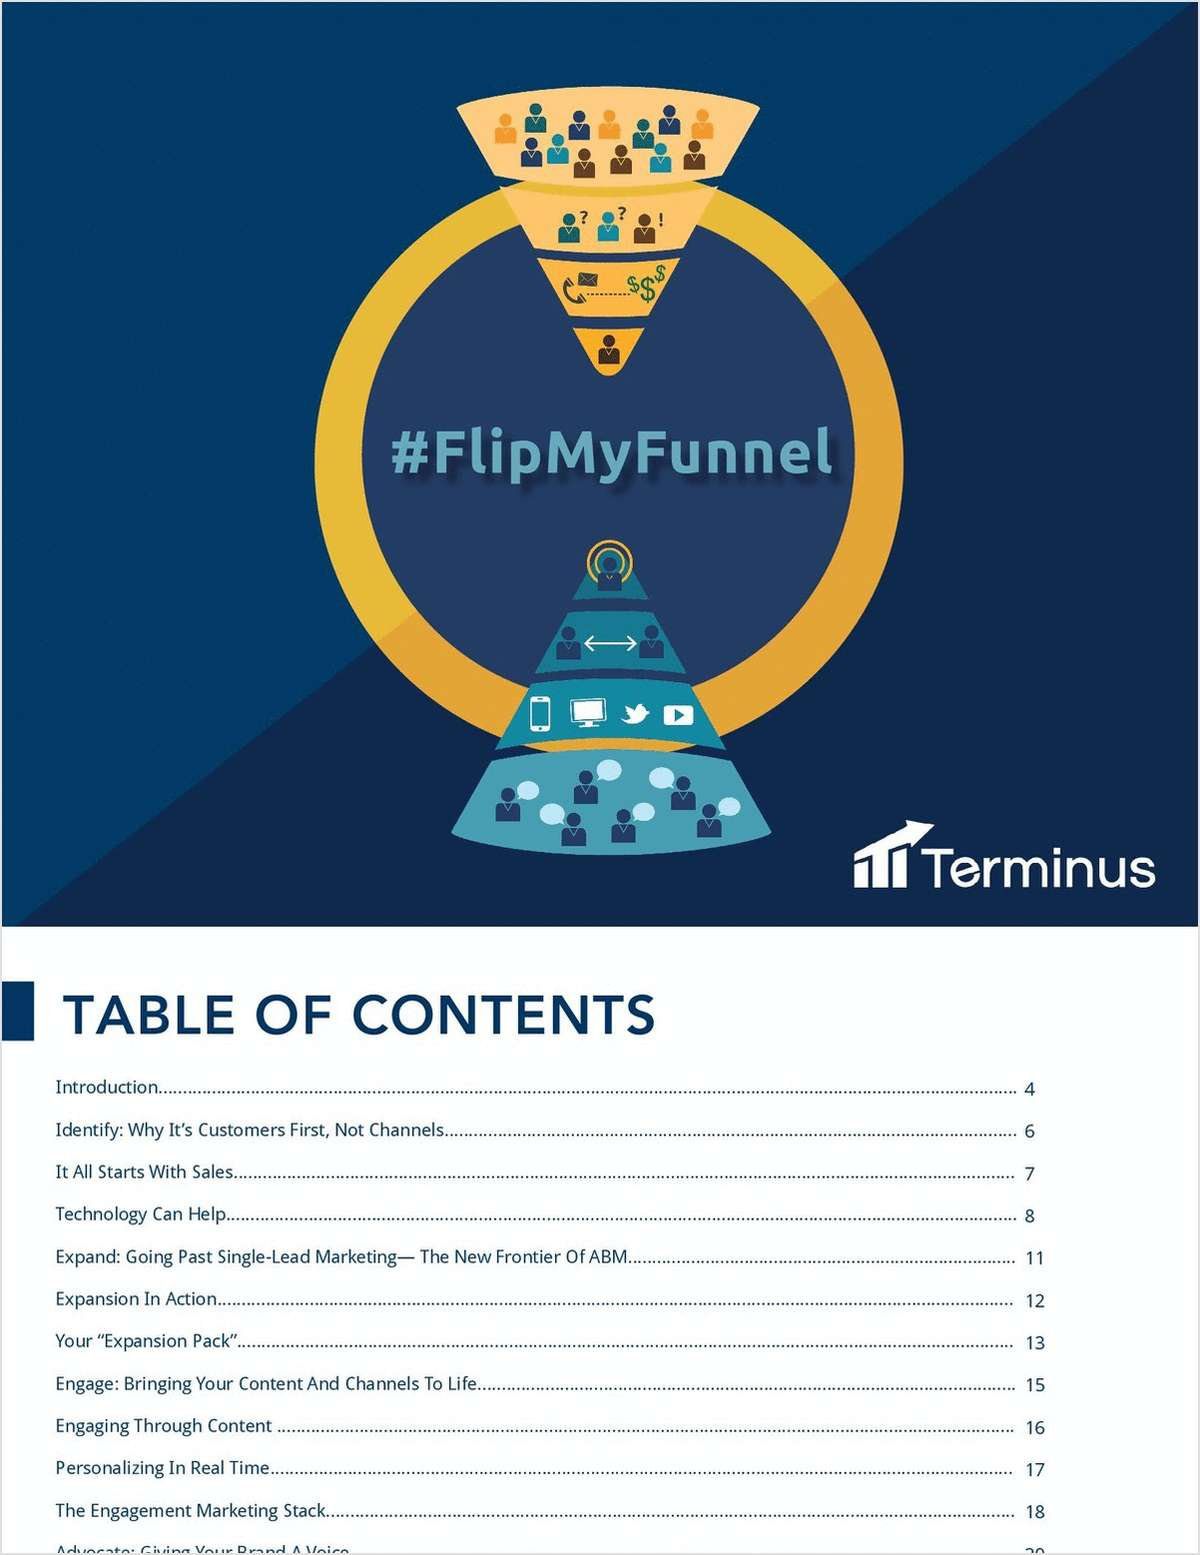 Flip My Funnel - Guide To B2B Account Based Marketing